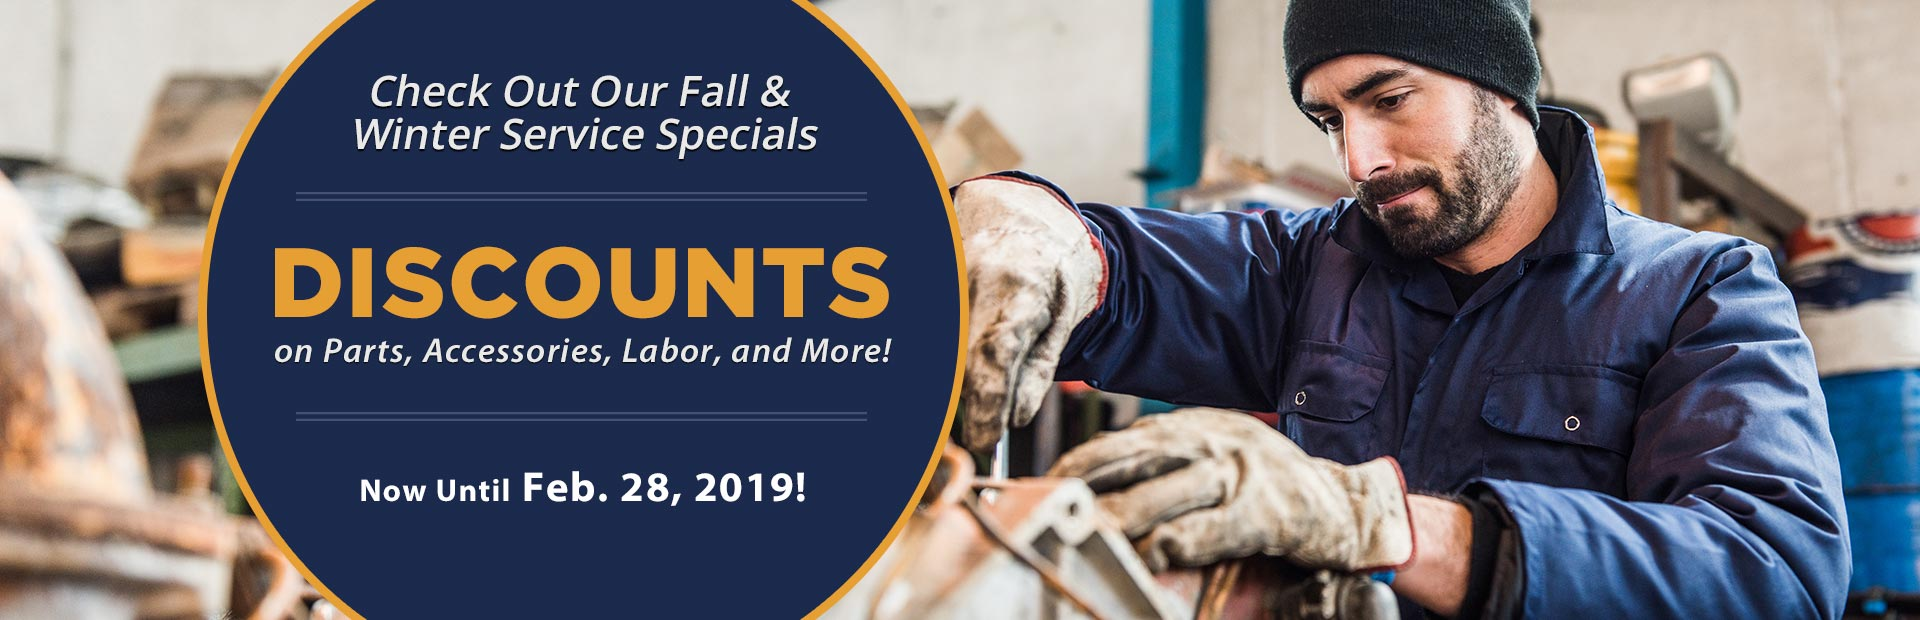 Fall & Winter Service Specials: Get Discounts on parts, accessories, labor, and more until February 28, 2019!